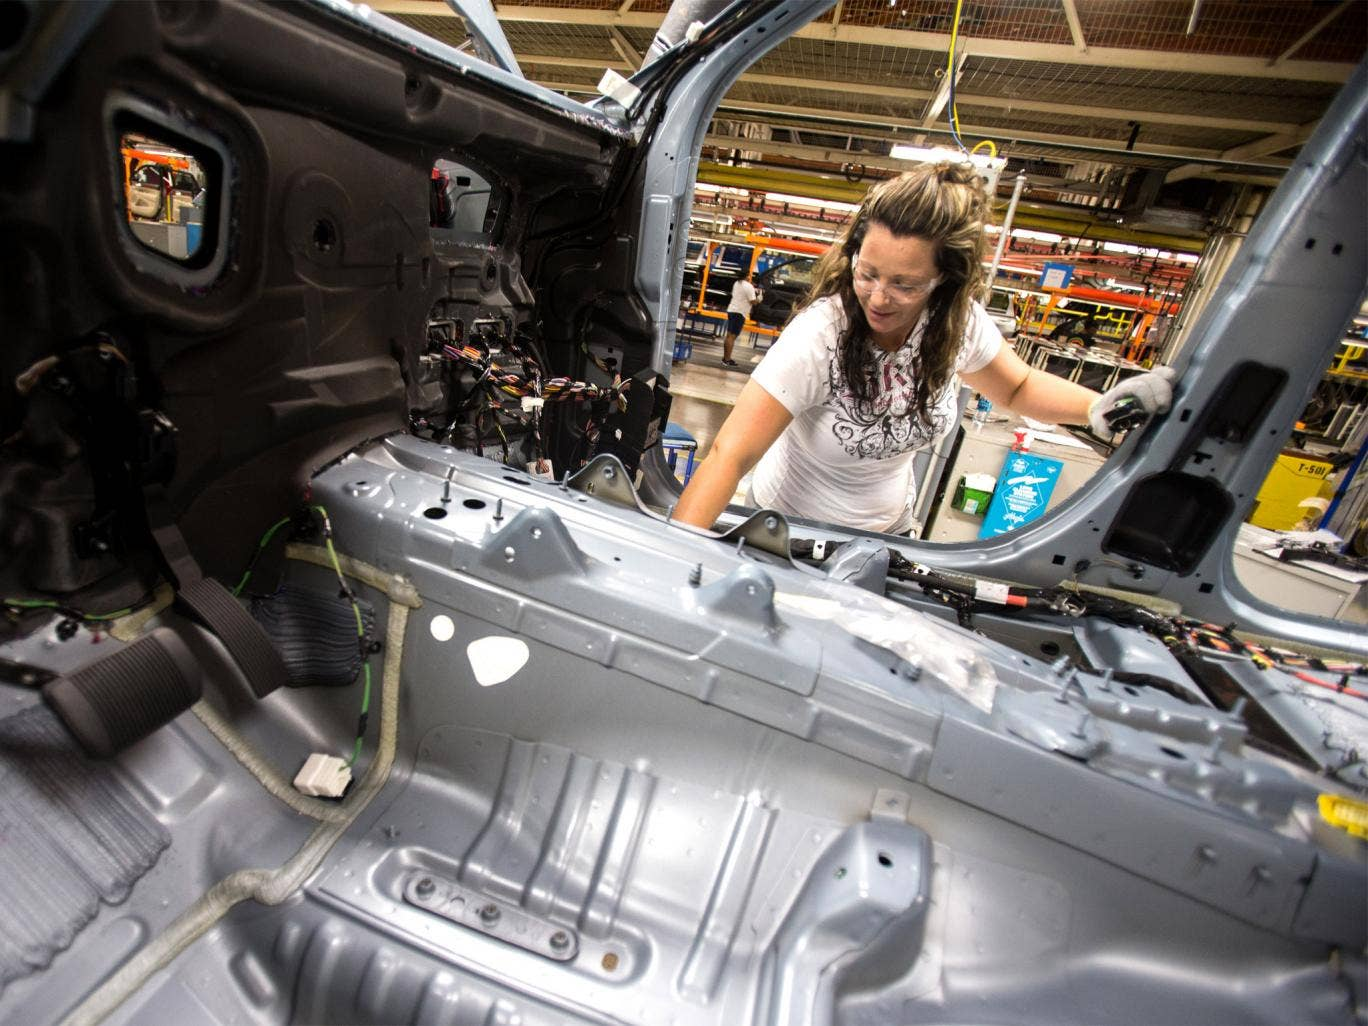 A worker at the Jefferson North plant inspects wiring on a Jeep, which has been one of the key drivers of Chrysler's turnaround